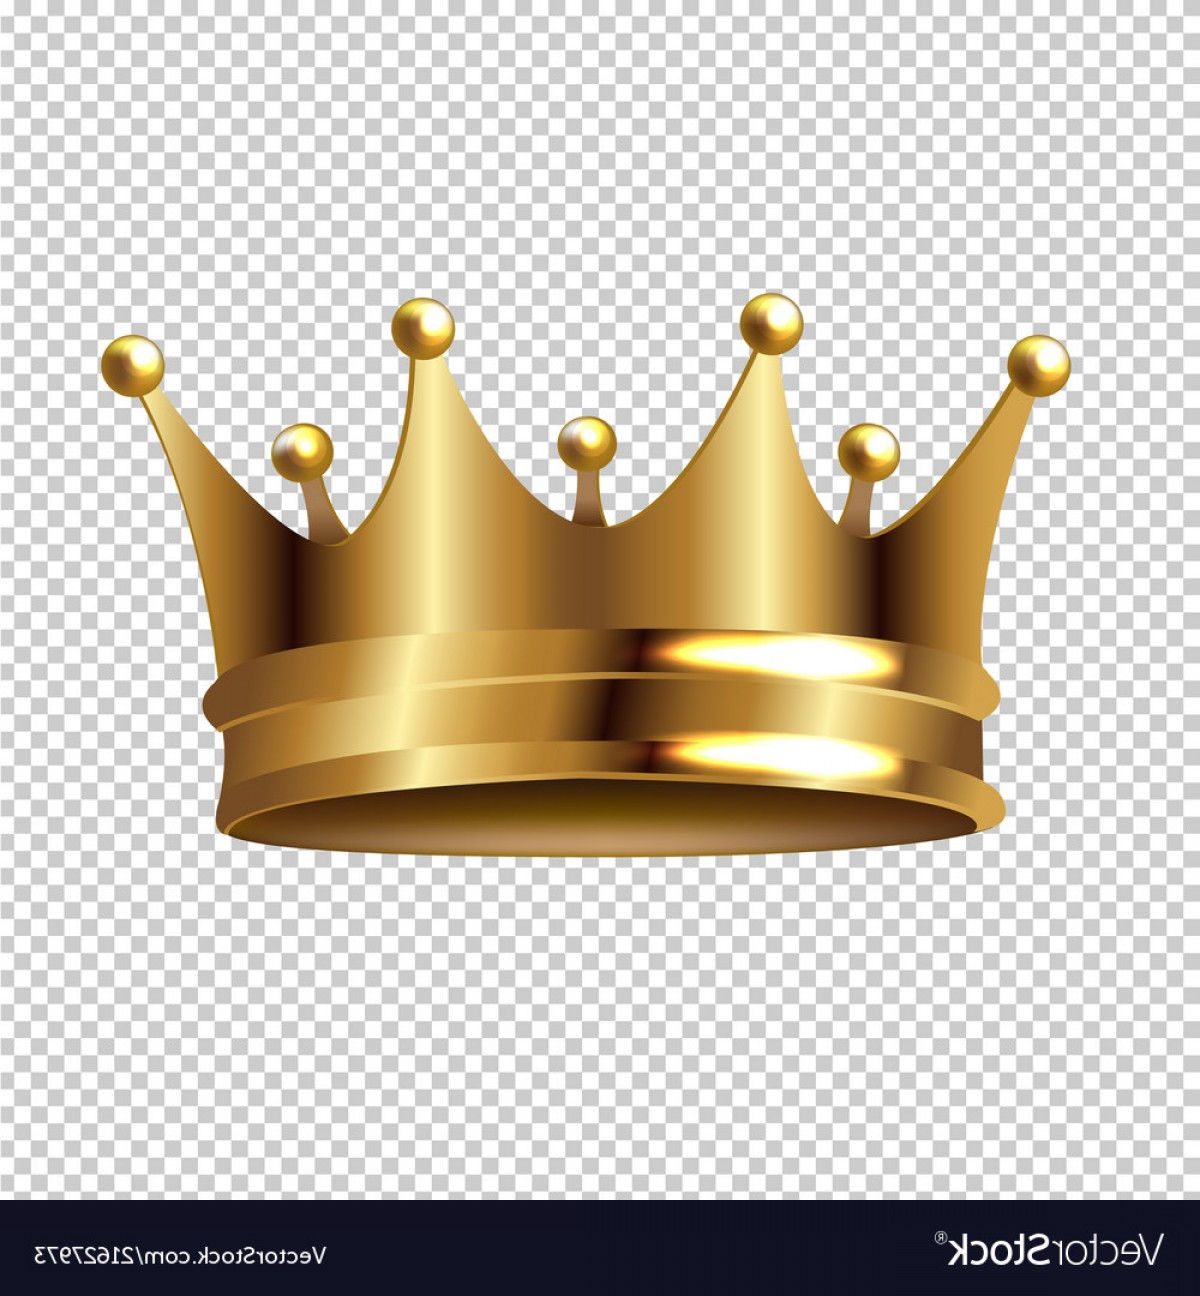 Transparent Queen Crown Vector: Golden Crown Isolated Transparent Background Vector